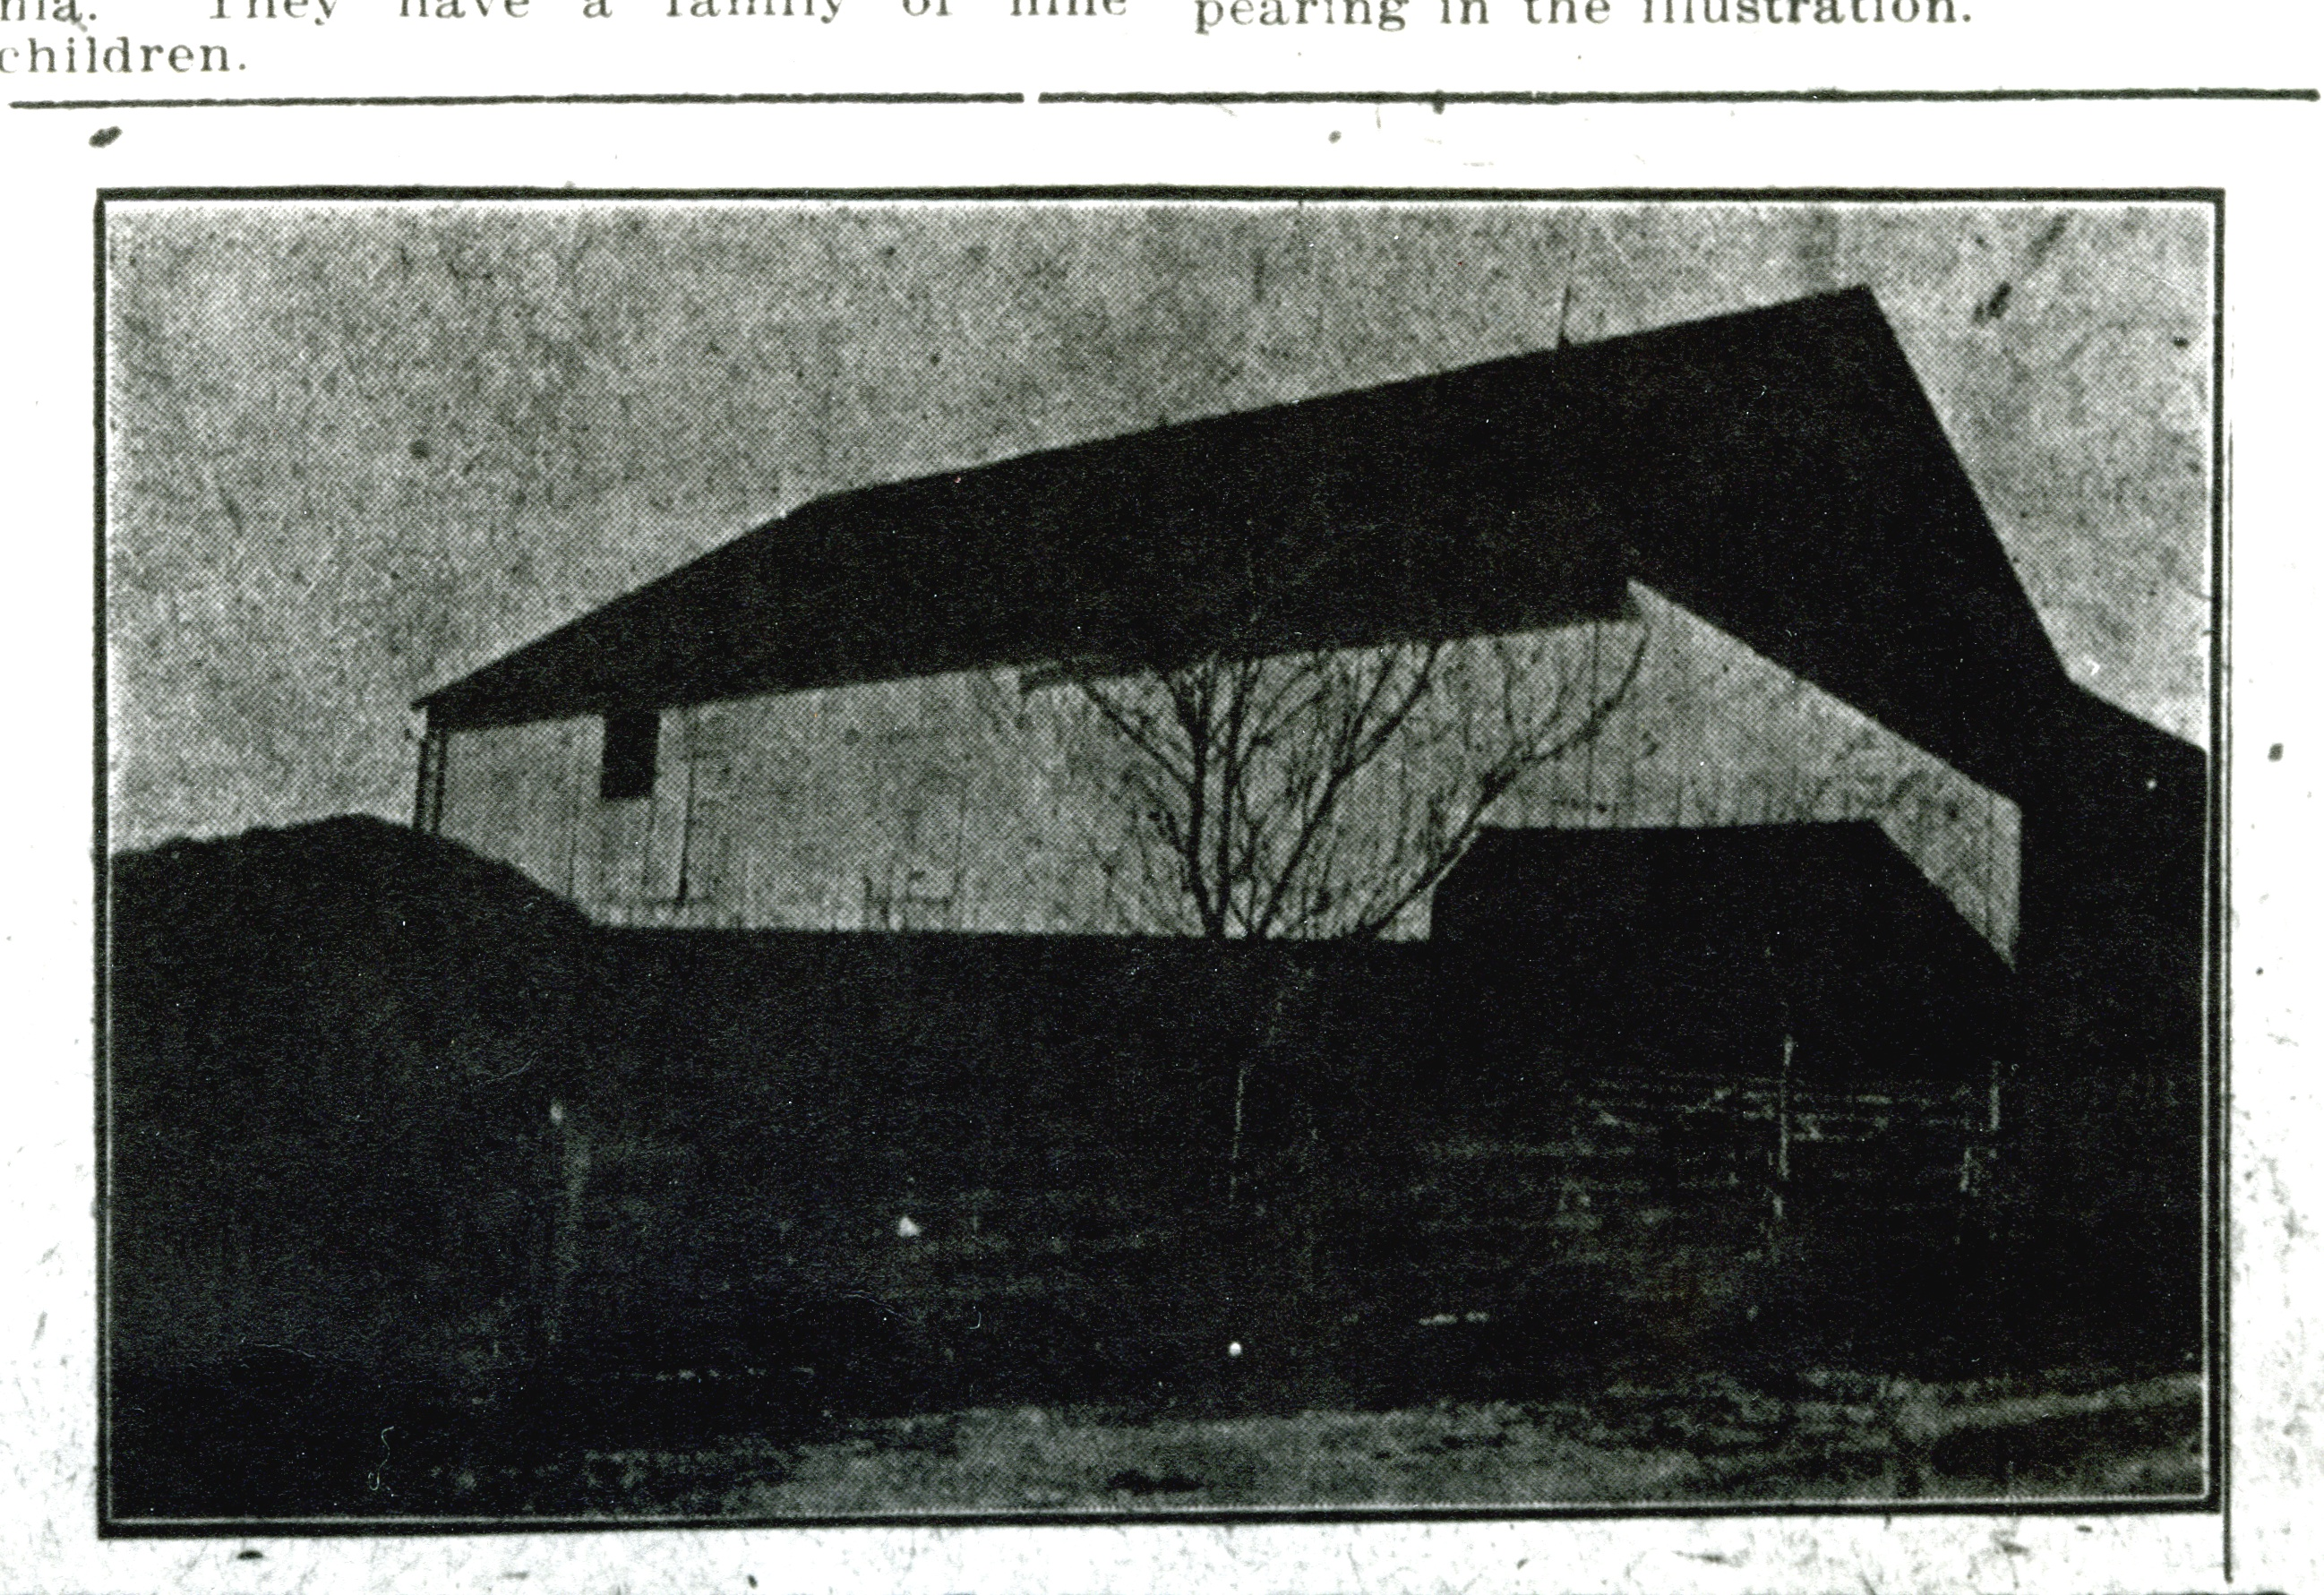 Hargleroad farm in 1908, Guildford Springs, PA